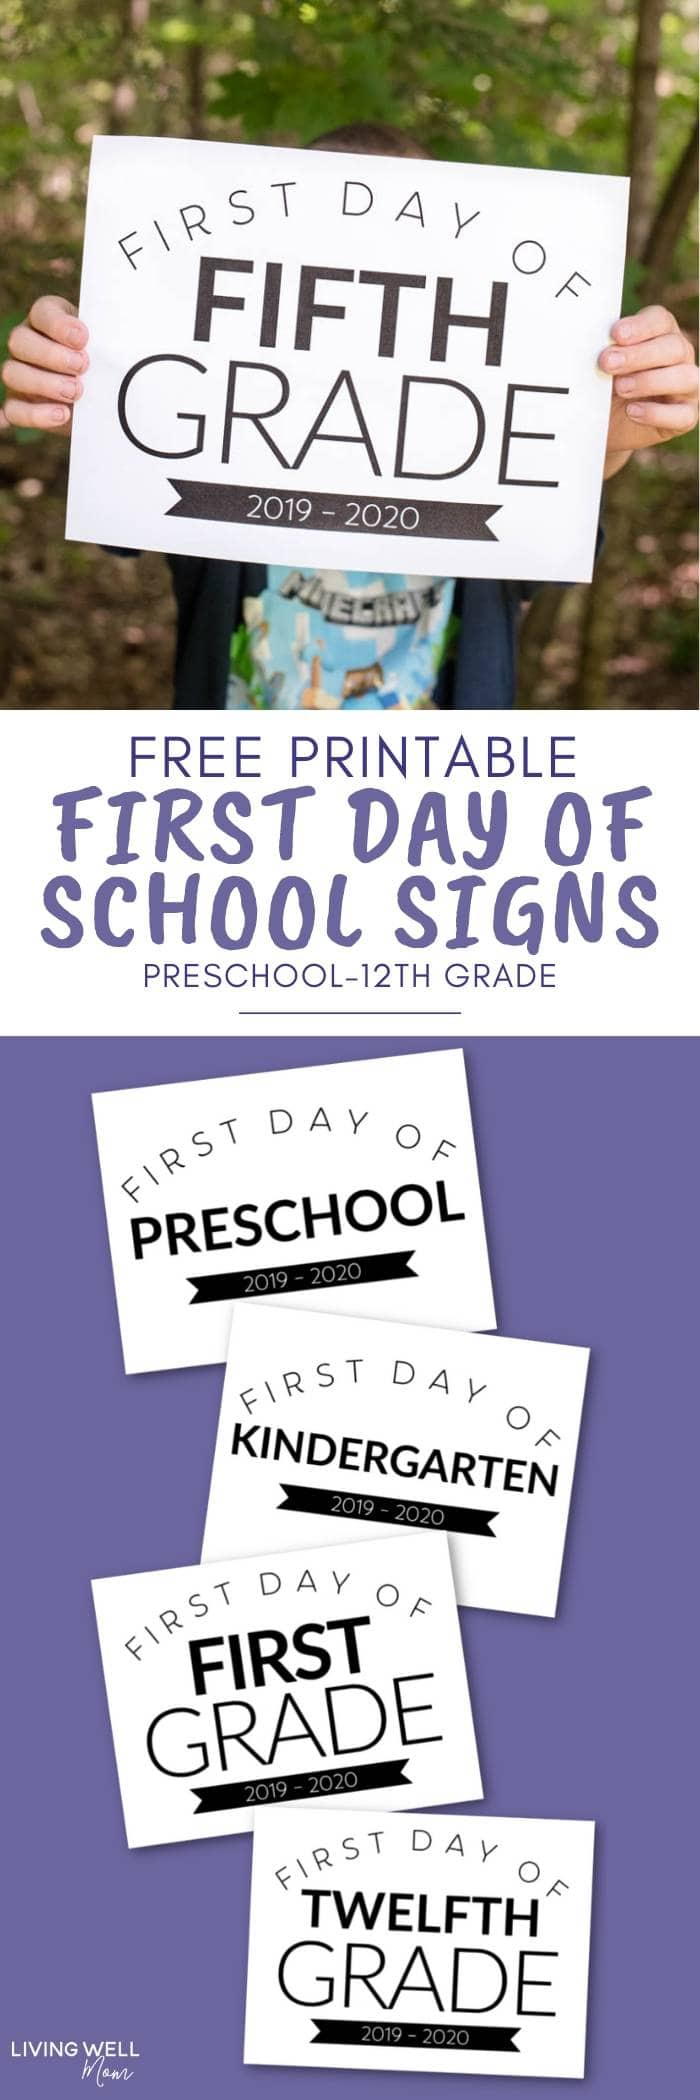 picture about First Day of School Sign Printable named Totally free Printable Initial Working day of University Indications for All Grades